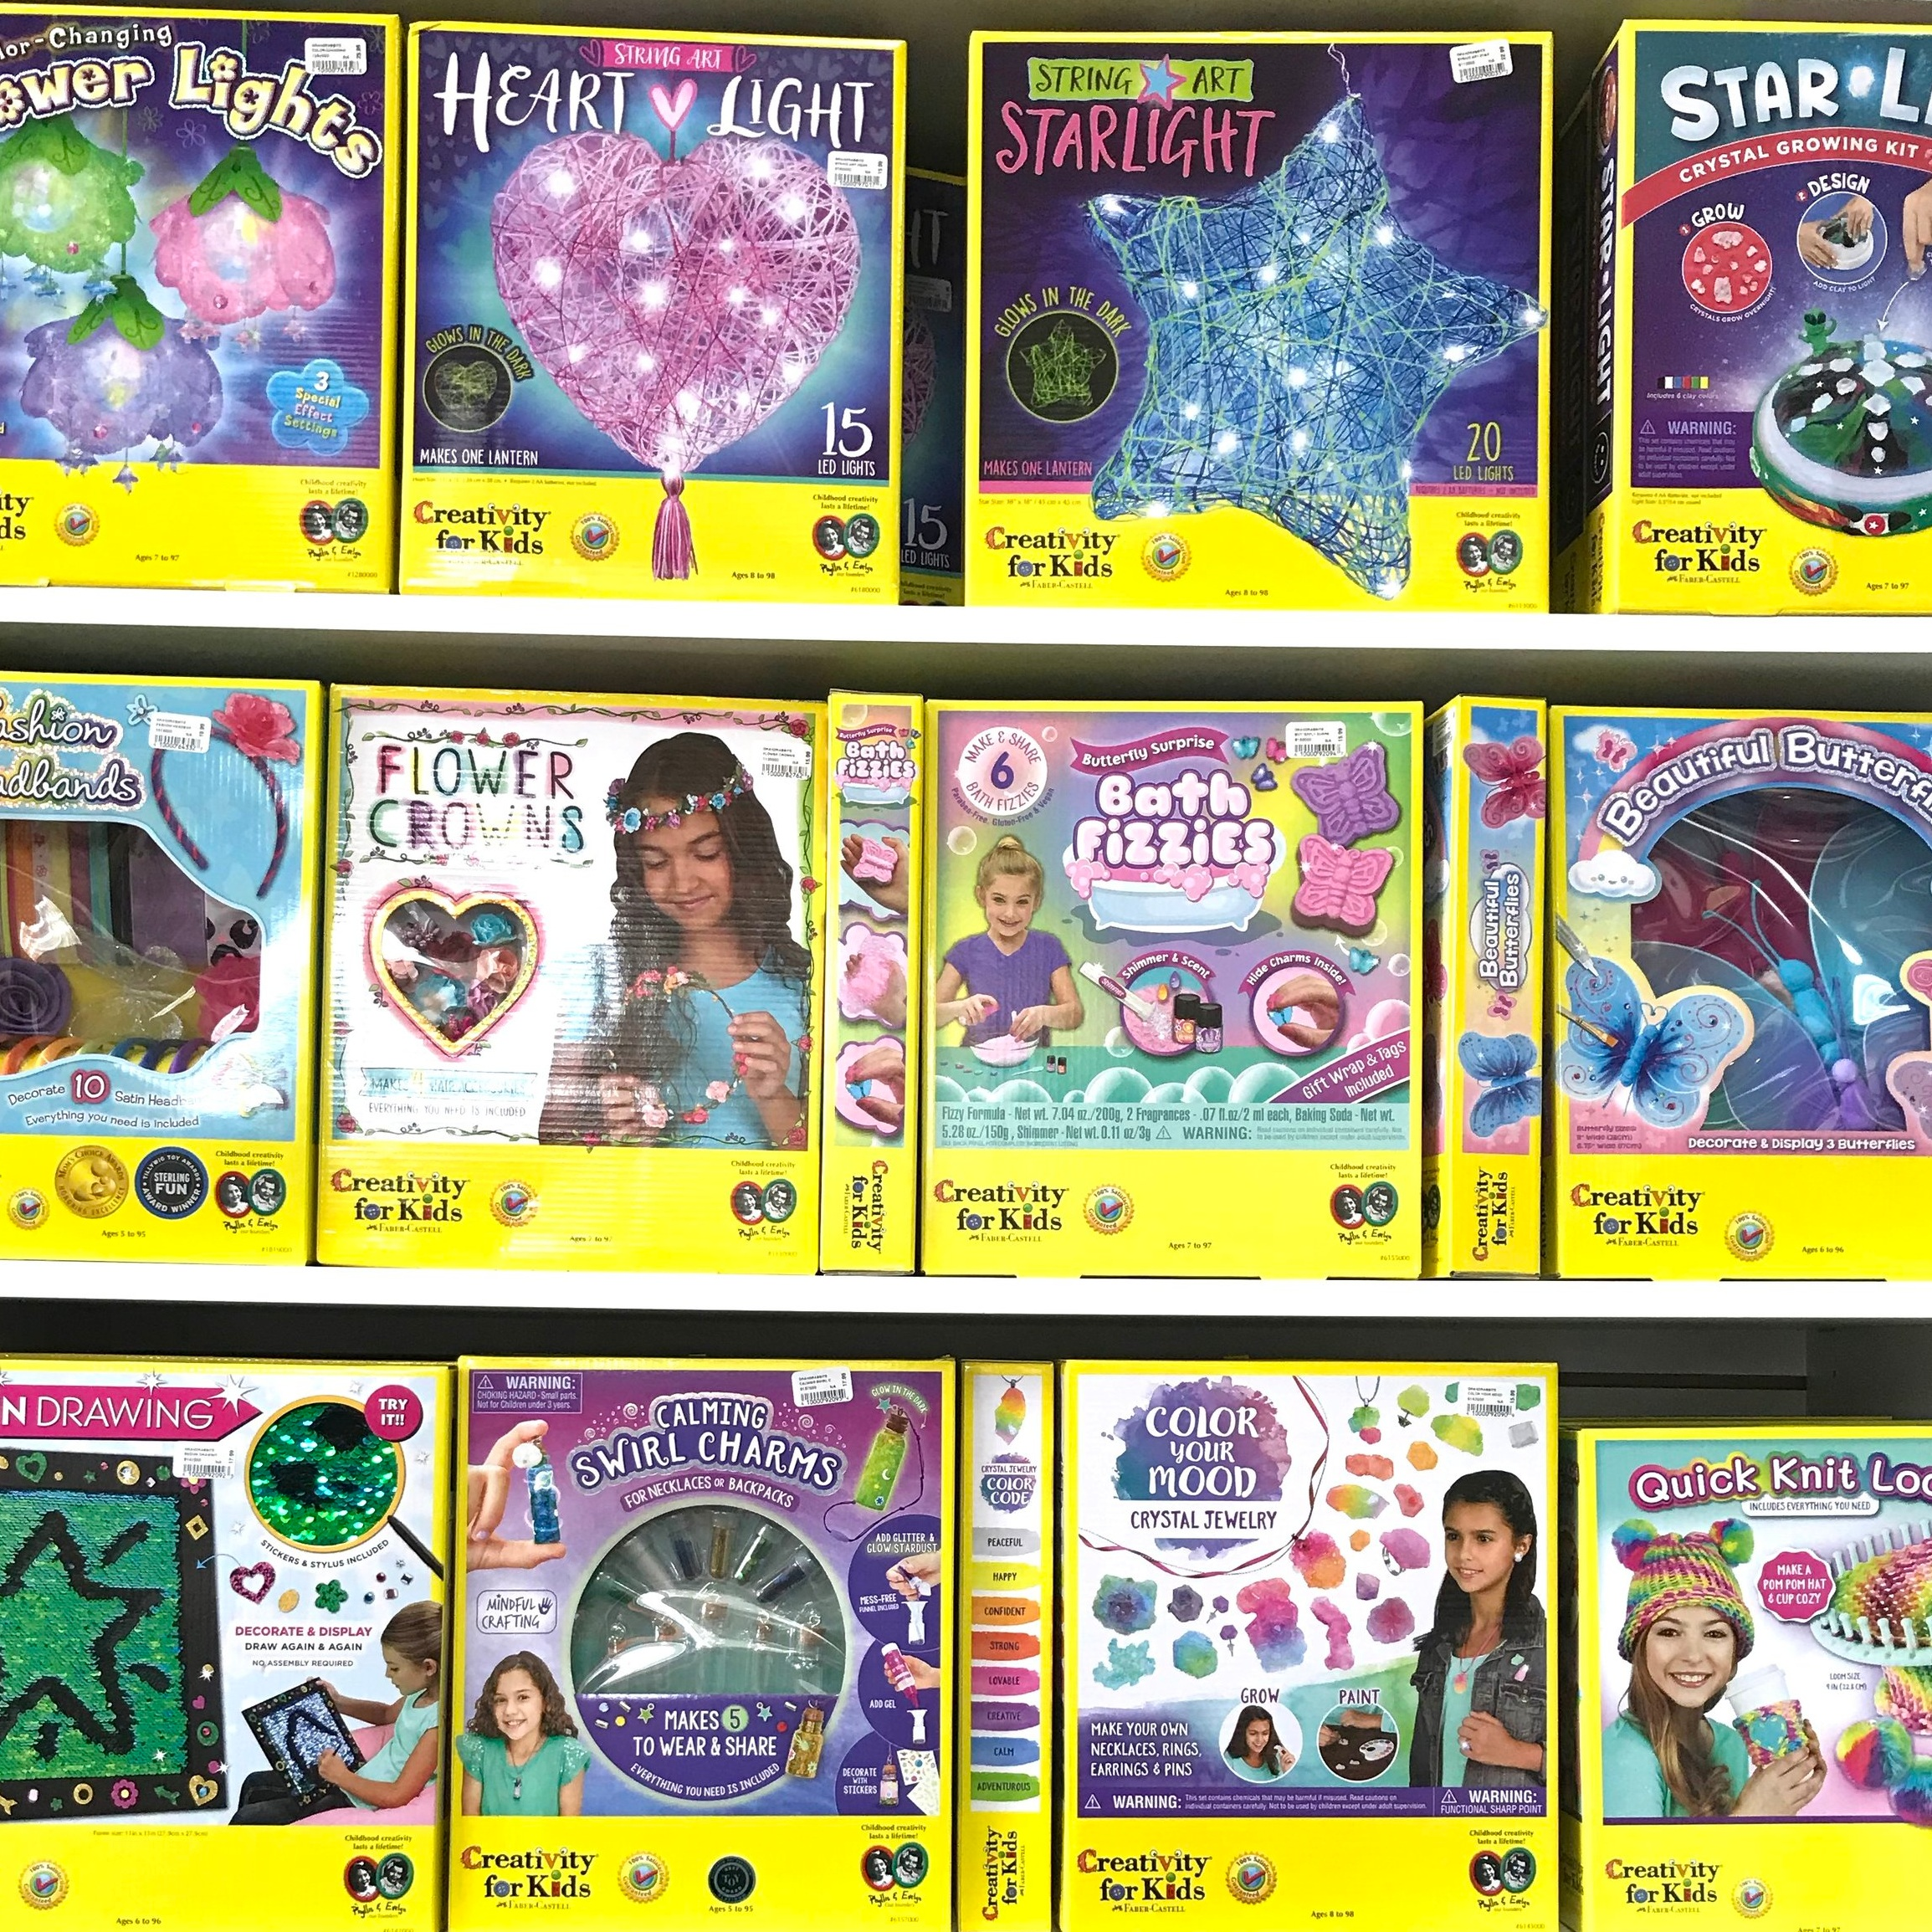 Even the most progressive toy stores are still stuck with sexist packaging targeting children by gender at an early age.